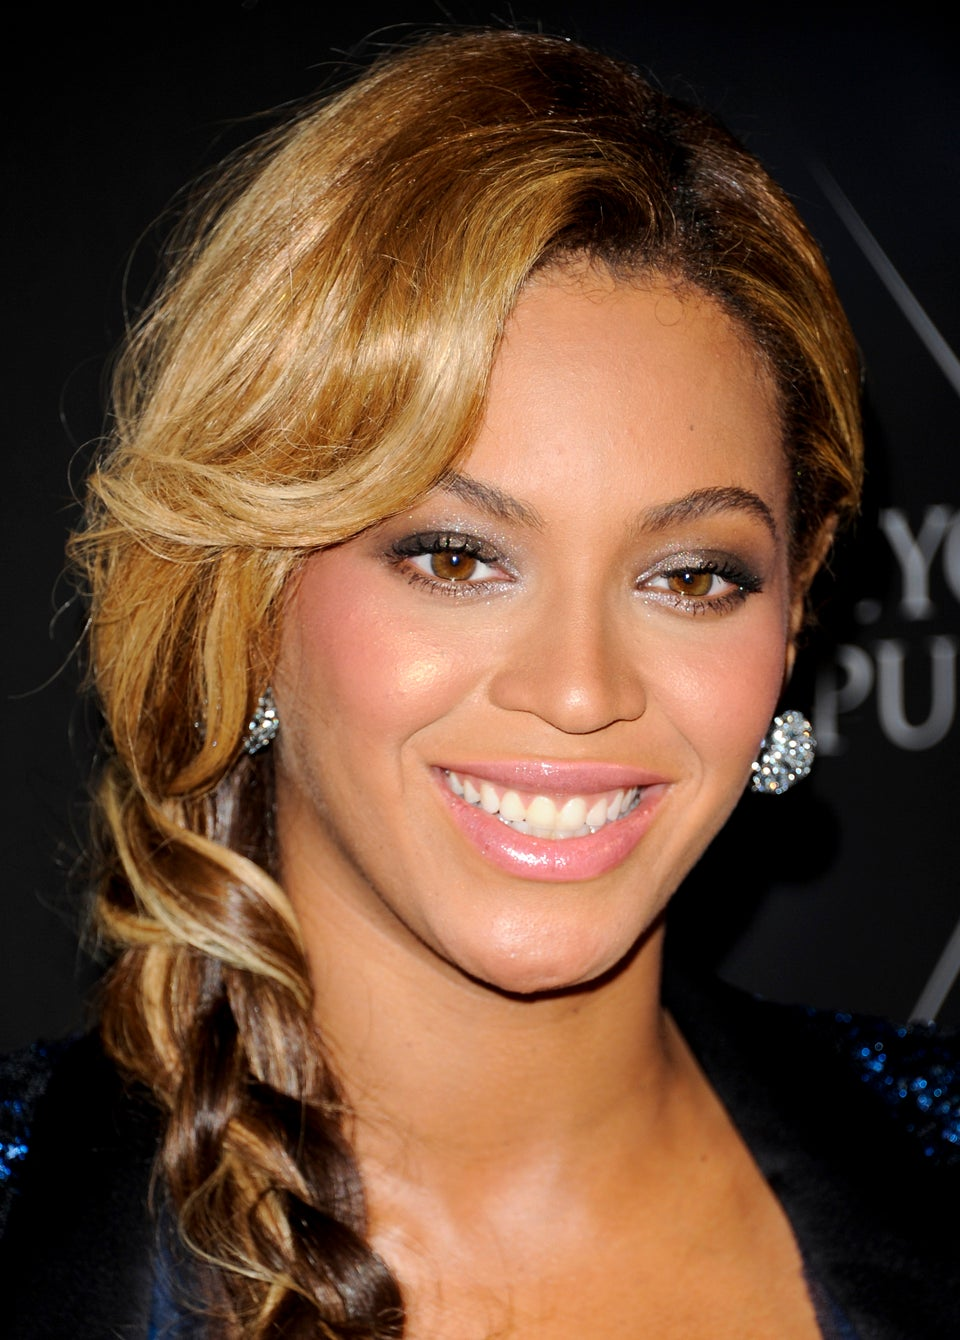 Houston Fans to Build Monument in Beyonce's Honor?